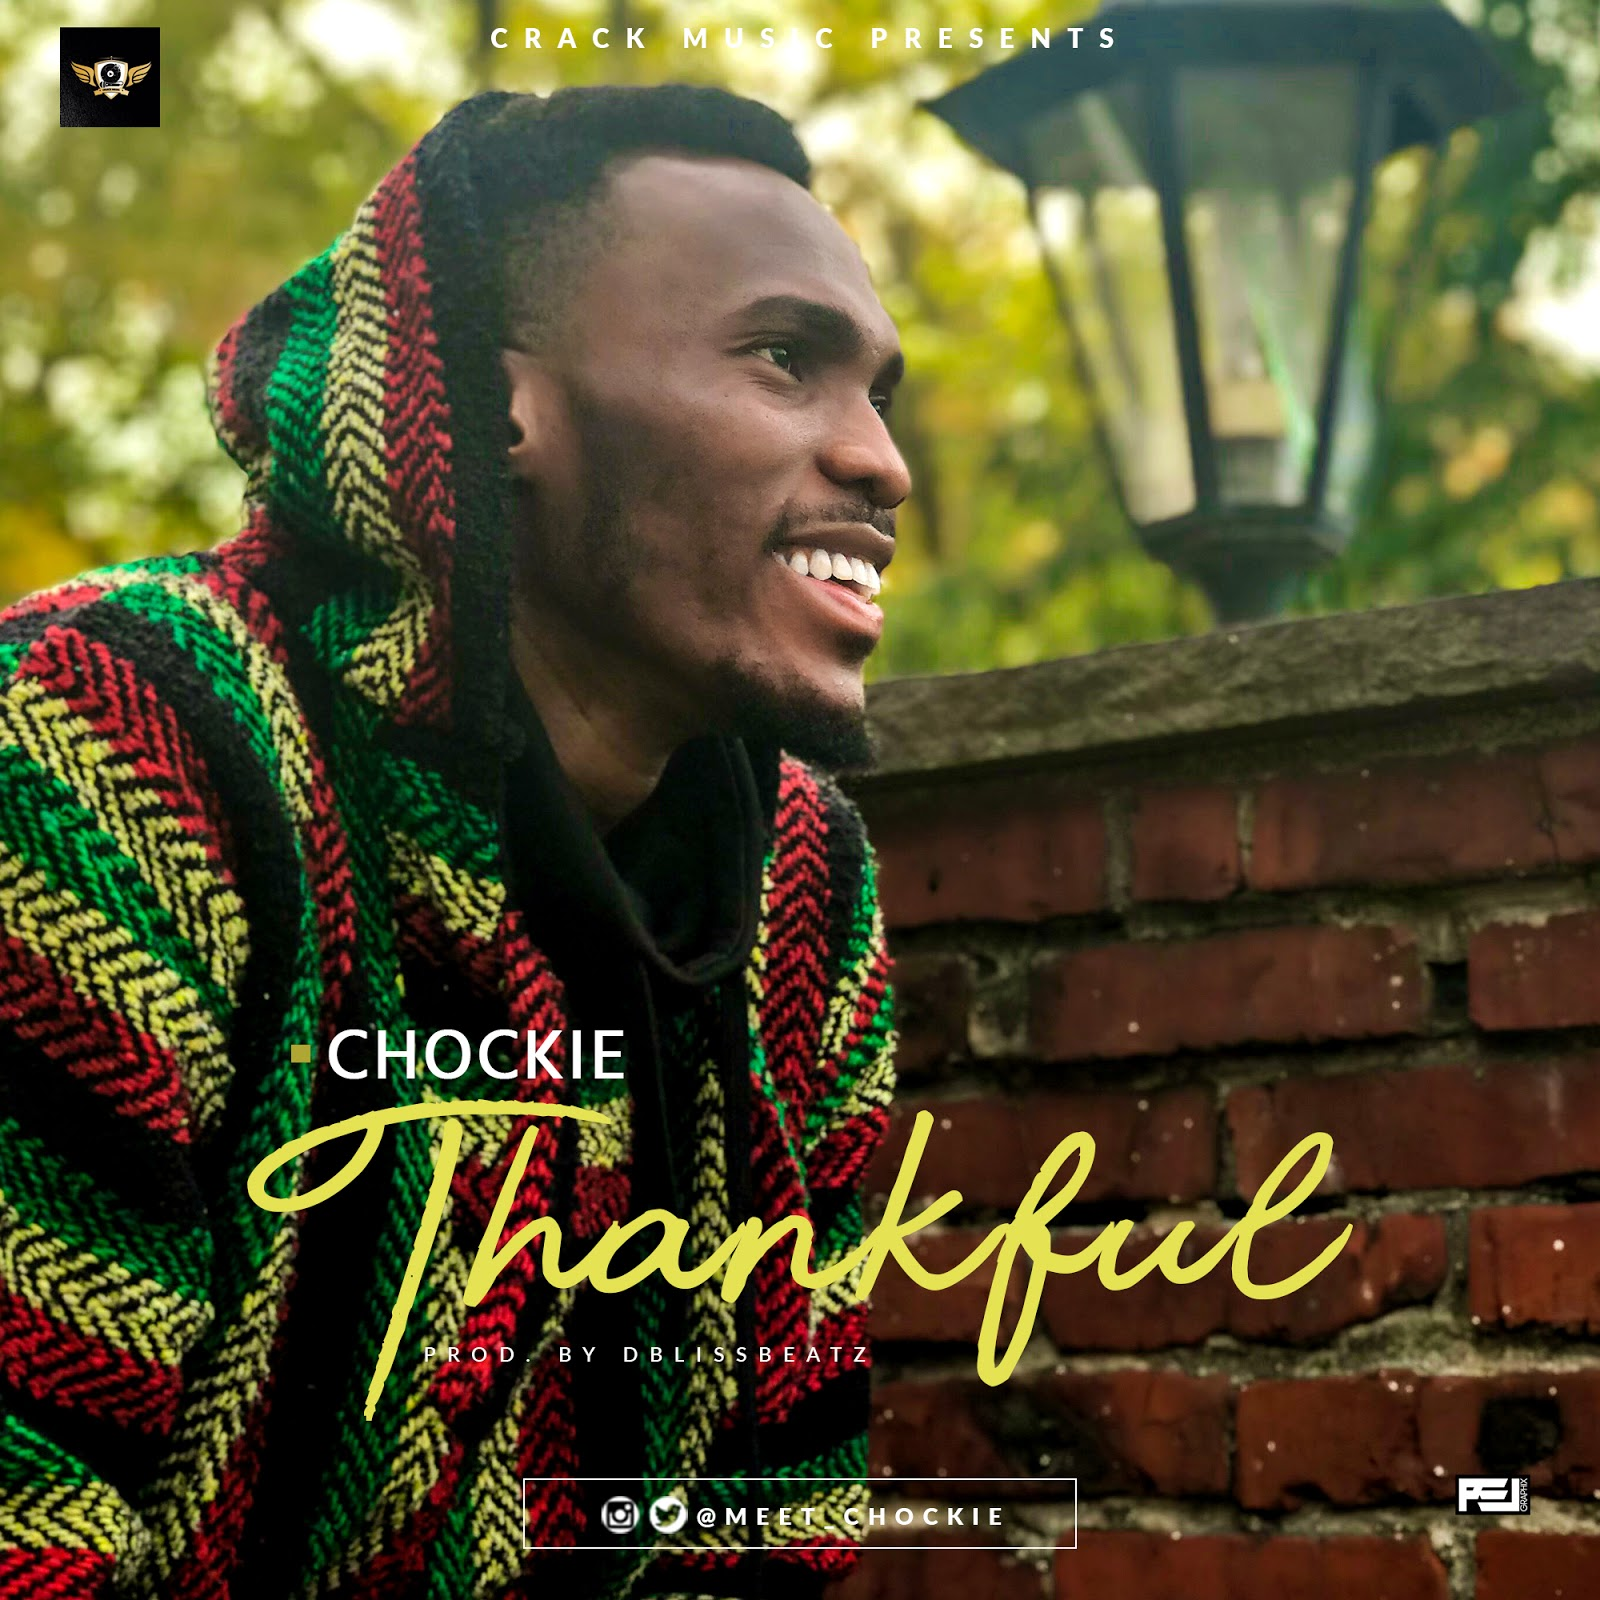 Download Chockie's new song Thankful - NALUCOOL